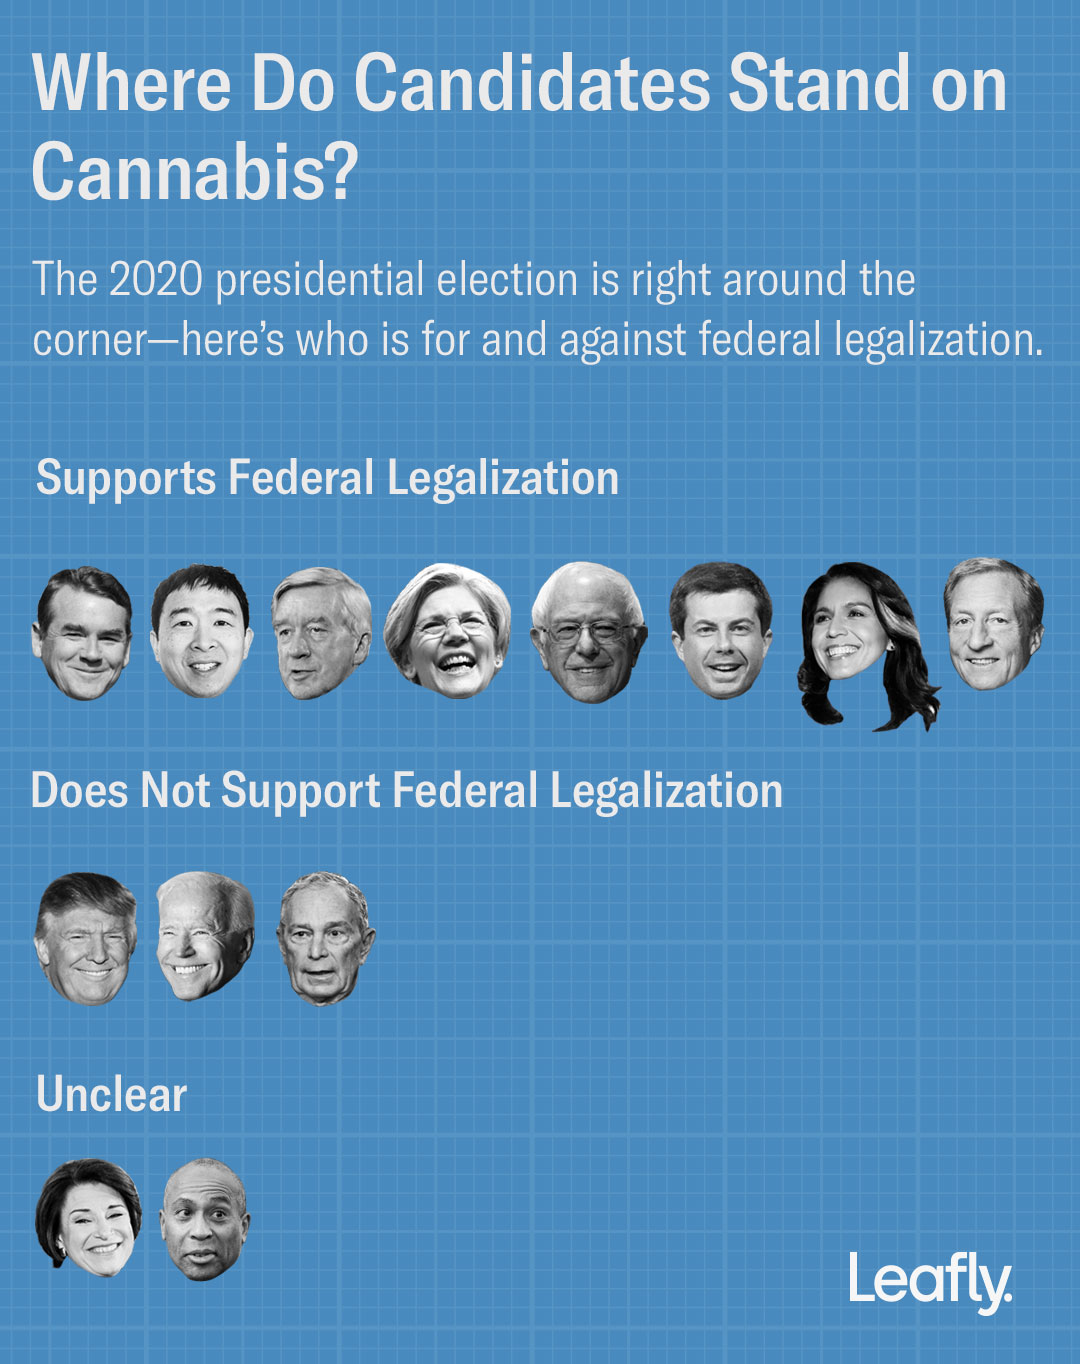 presidential candidates and where they stand on marijuana legalization